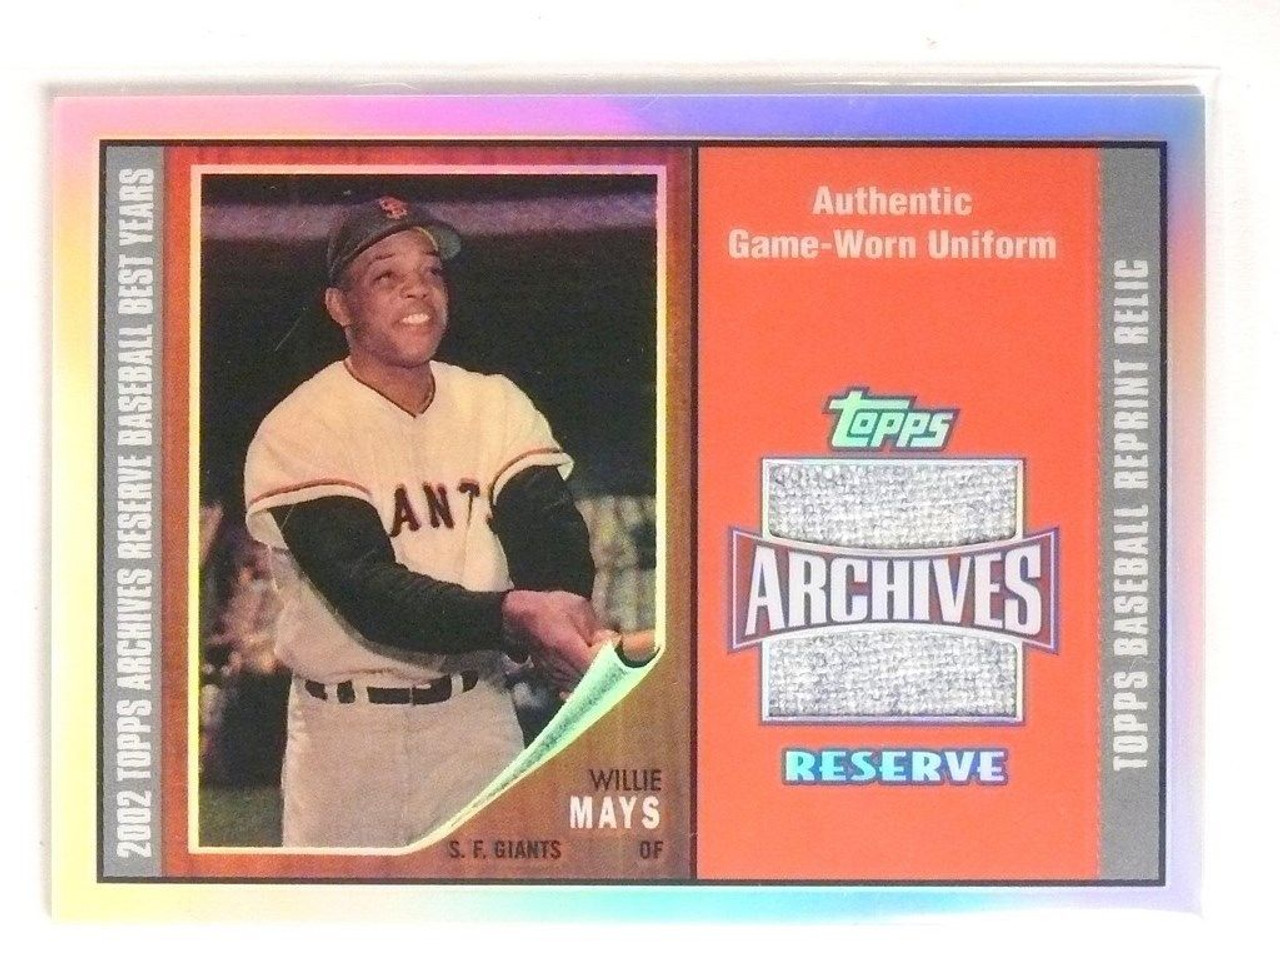 Sold 2800 2002 Topps Archives Reserve Willie Mays Jersey Trr Wm 55225